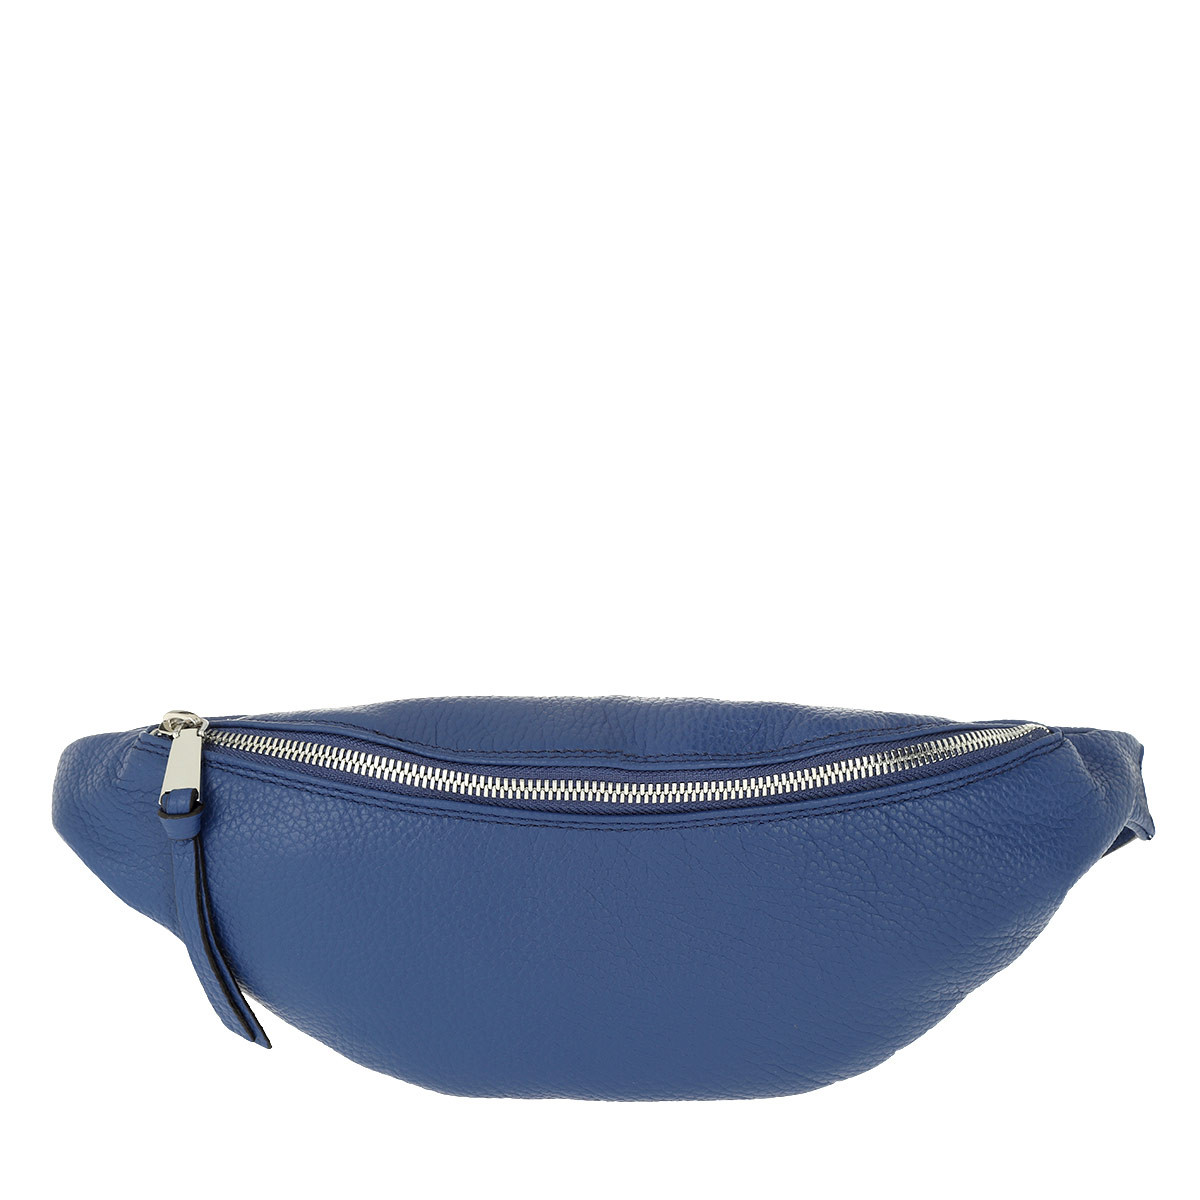 Abro Gürteltasche - Calf Adria Belt Bag Royal - in blau - für Damen